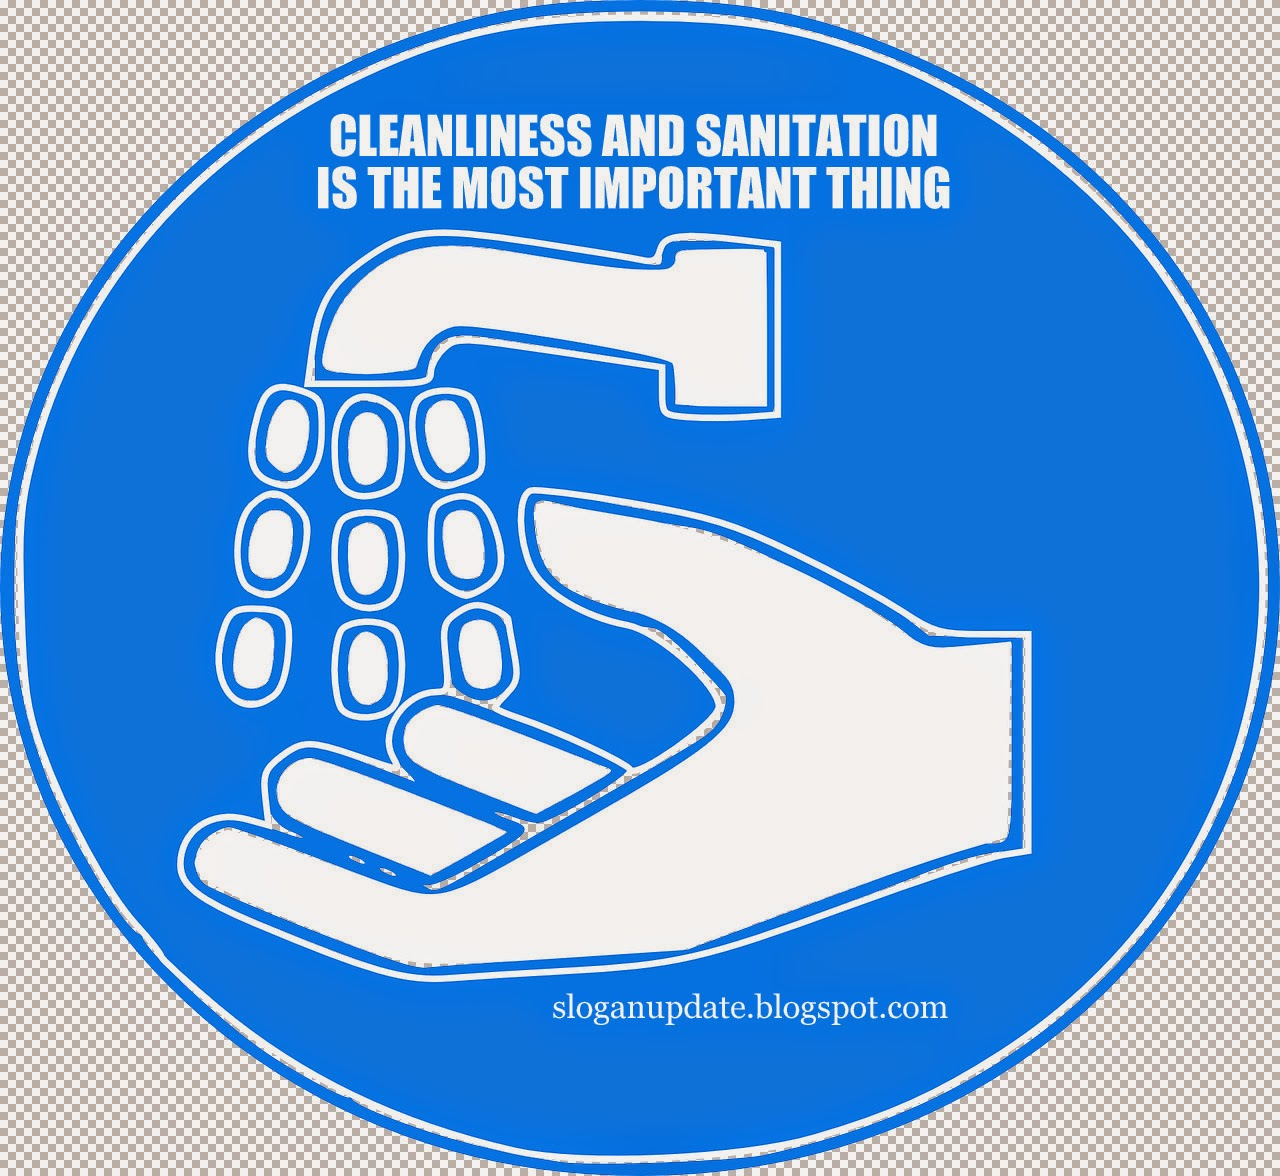 Cleanliness means safe health of your family